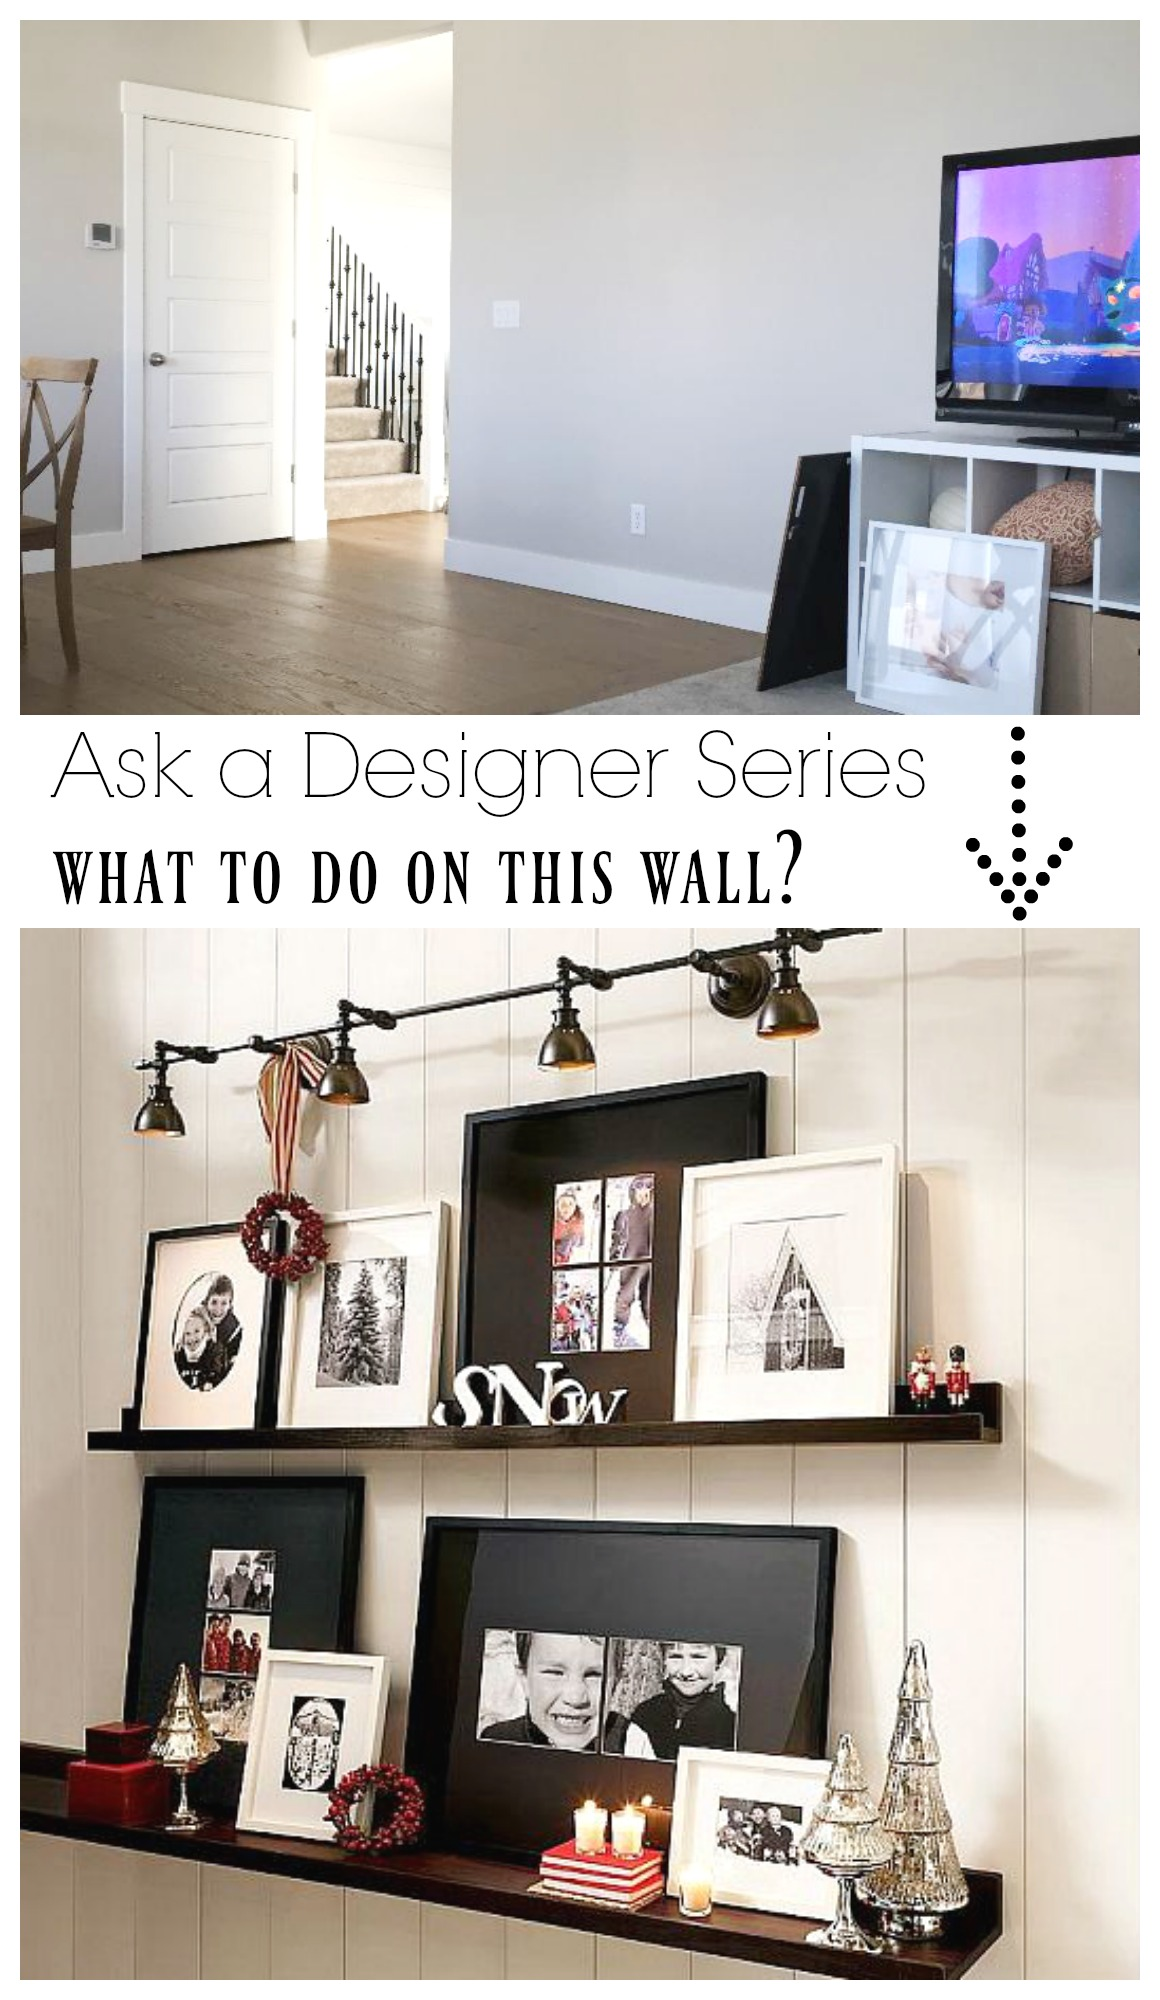 Ask a Designer Series Fireplace Wall Shelves Mudrooms and More